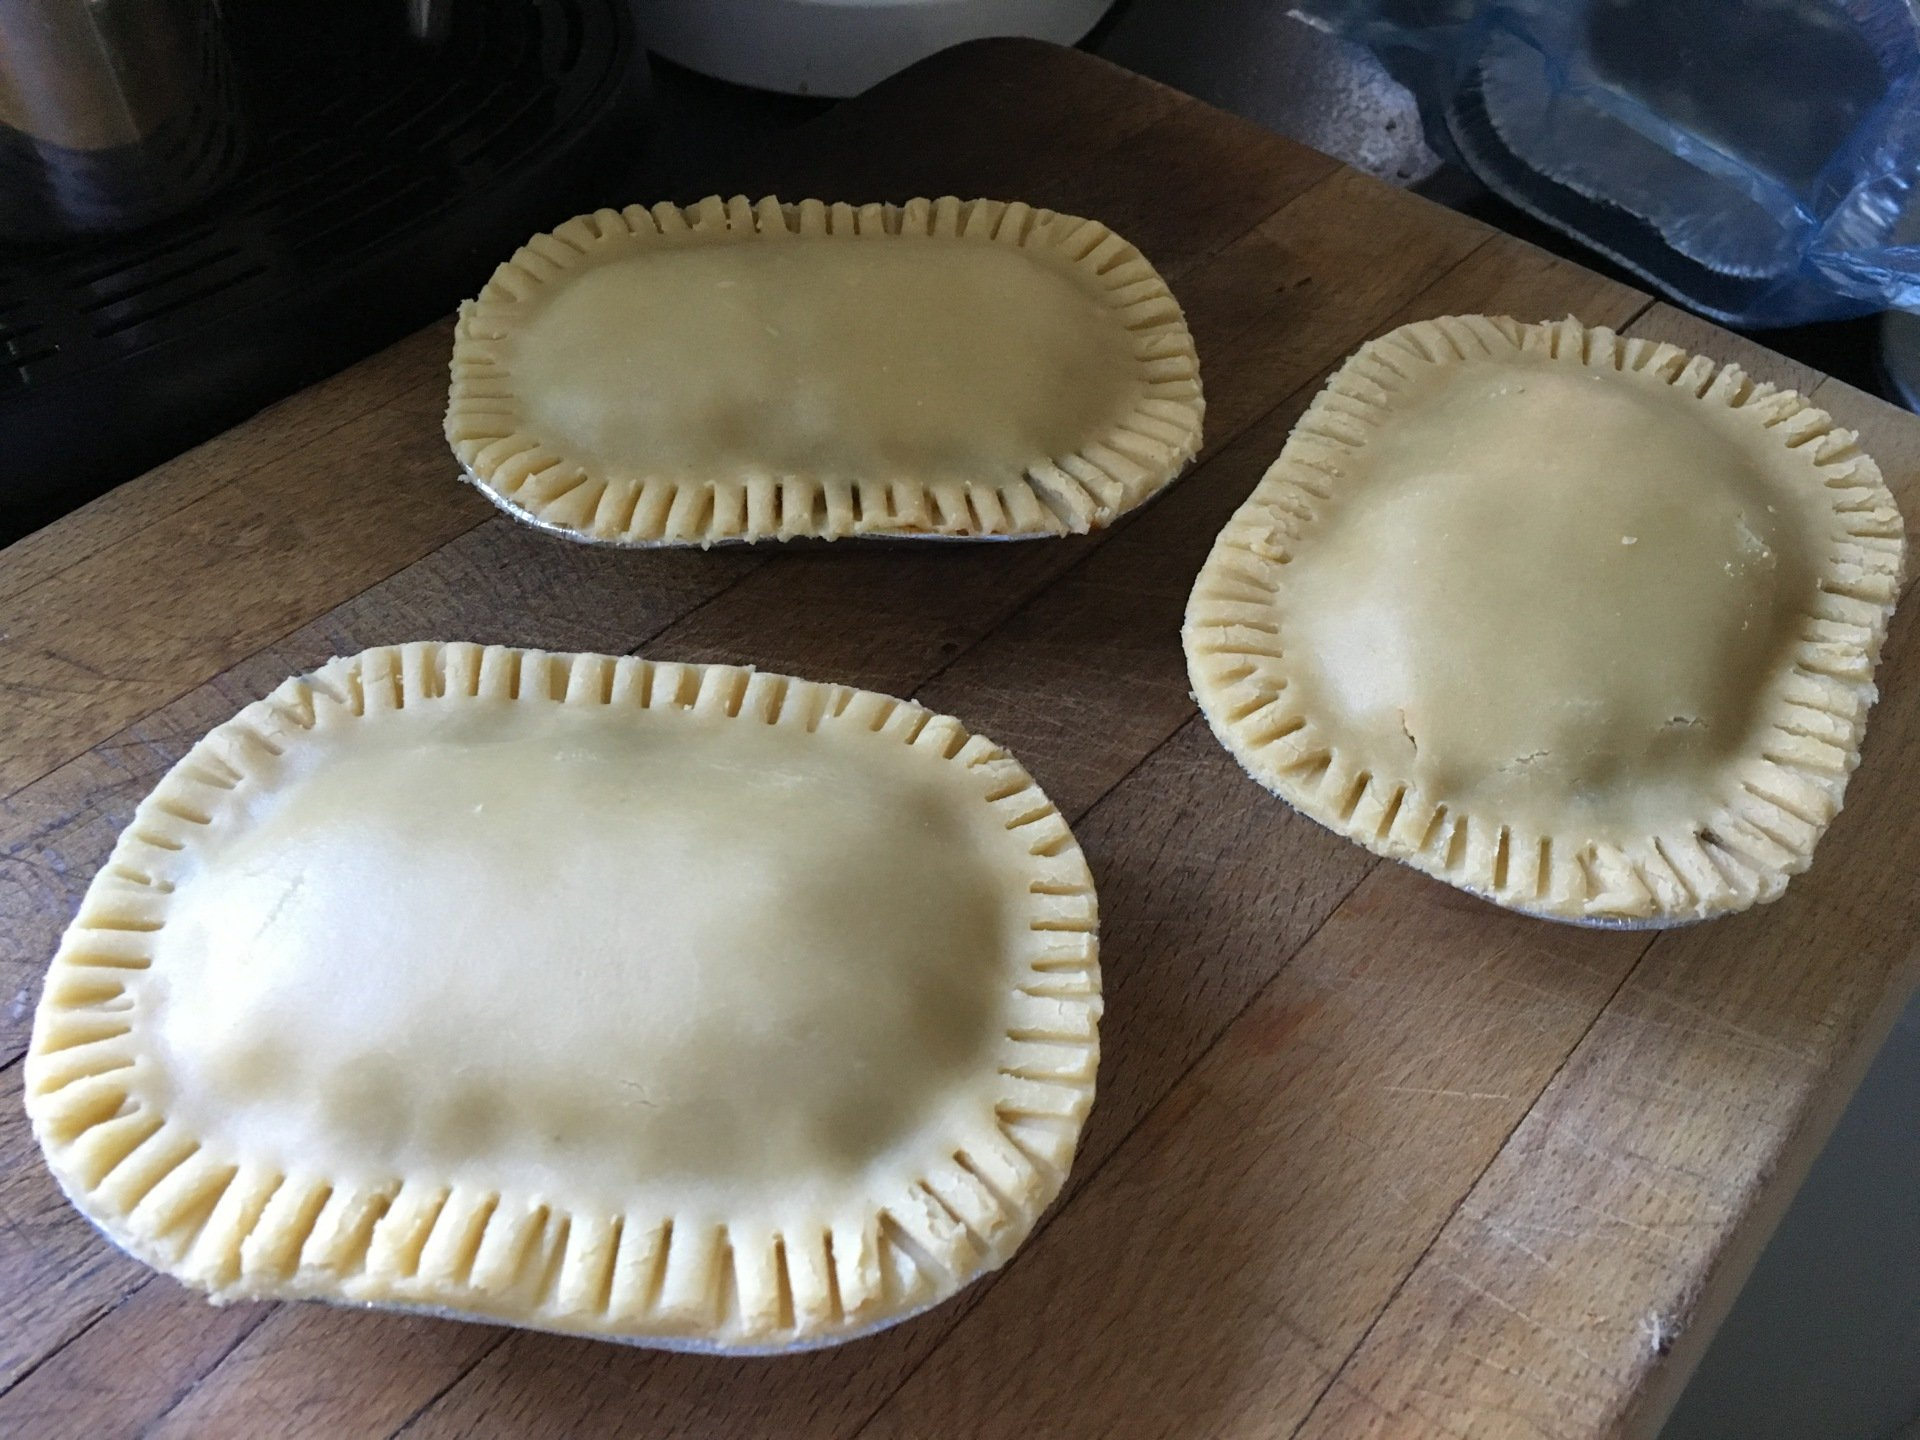 Crimp the pies